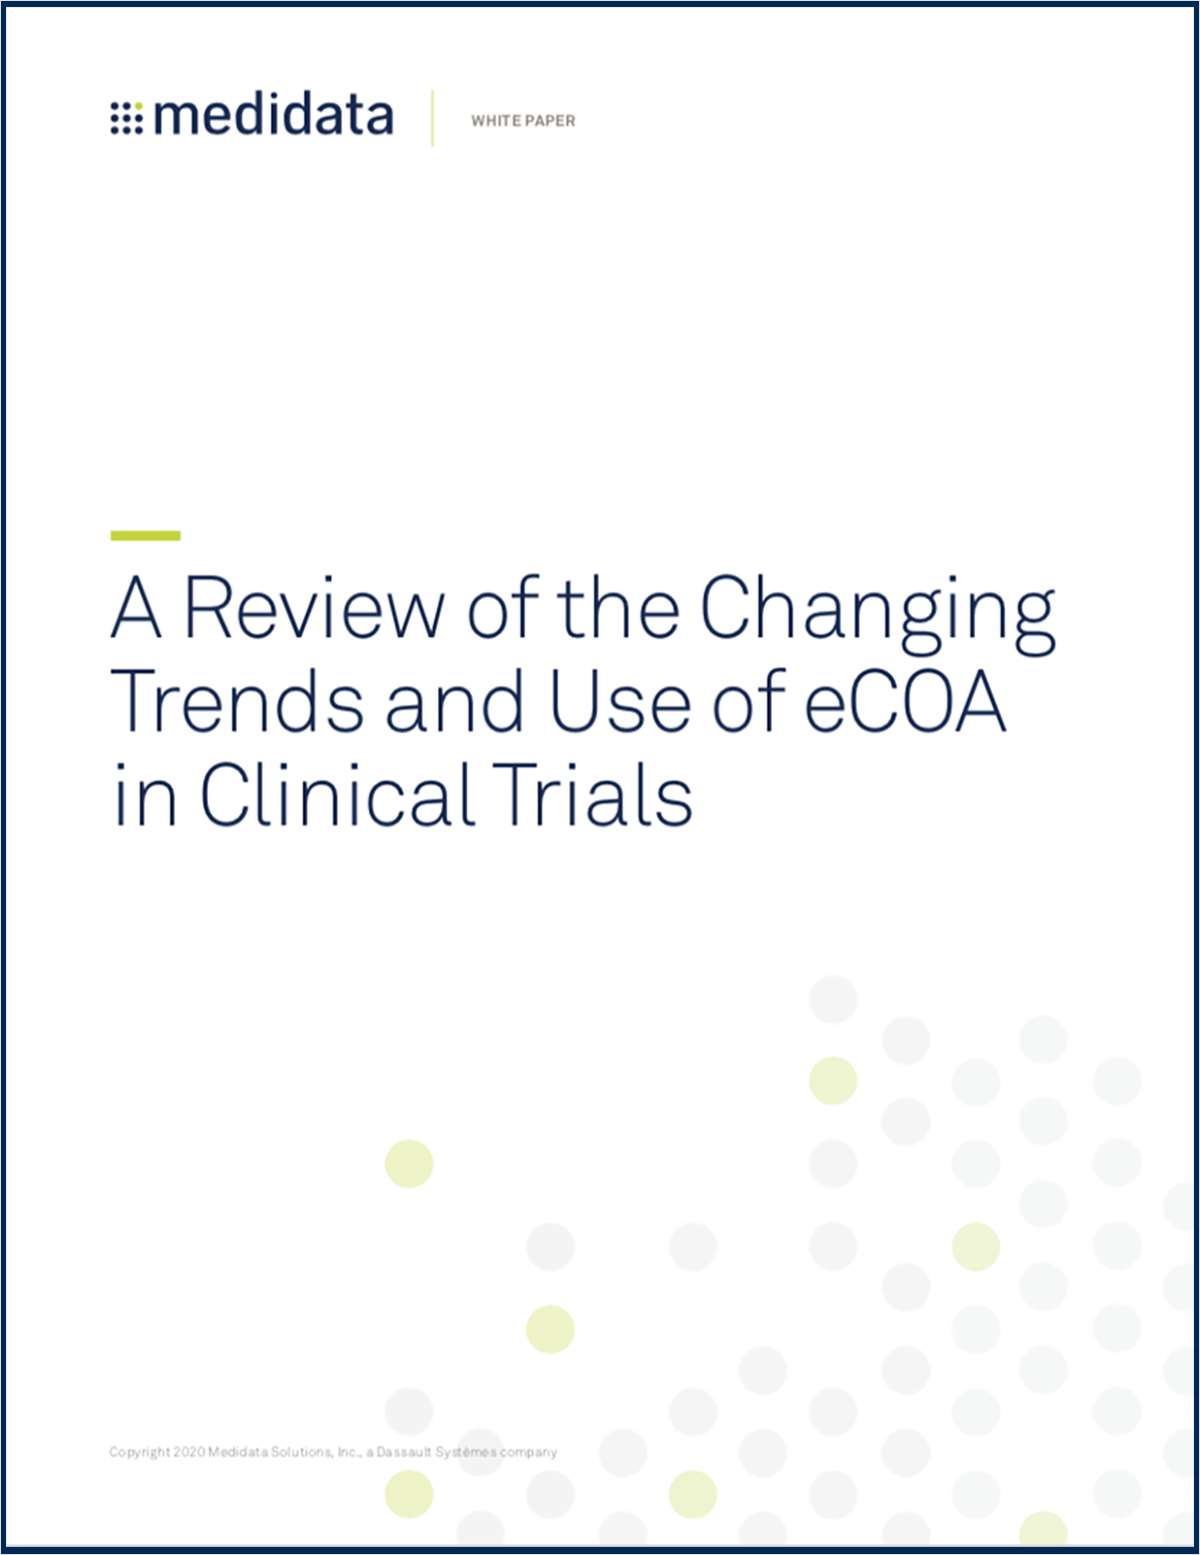 A Review of the Changing Trends and Use of eCOA in Clinical Trials